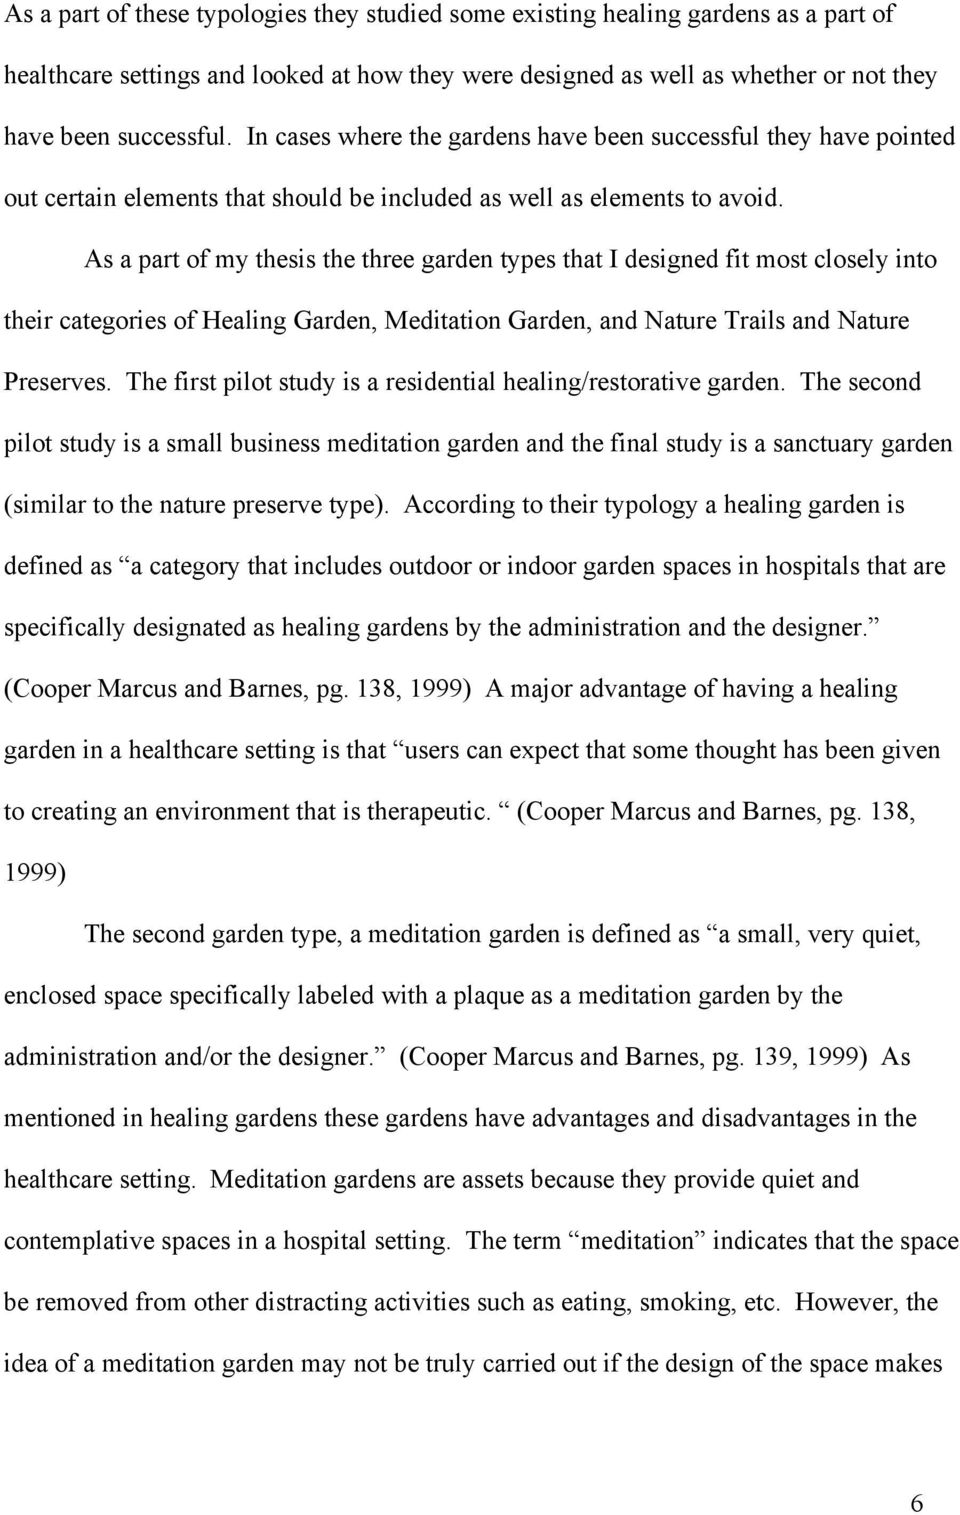 As a part of my thesis the three garden types that I designed fit most closely into their categories of Healing Garden, Meditation Garden, and Nature Trails and Nature Preserves.